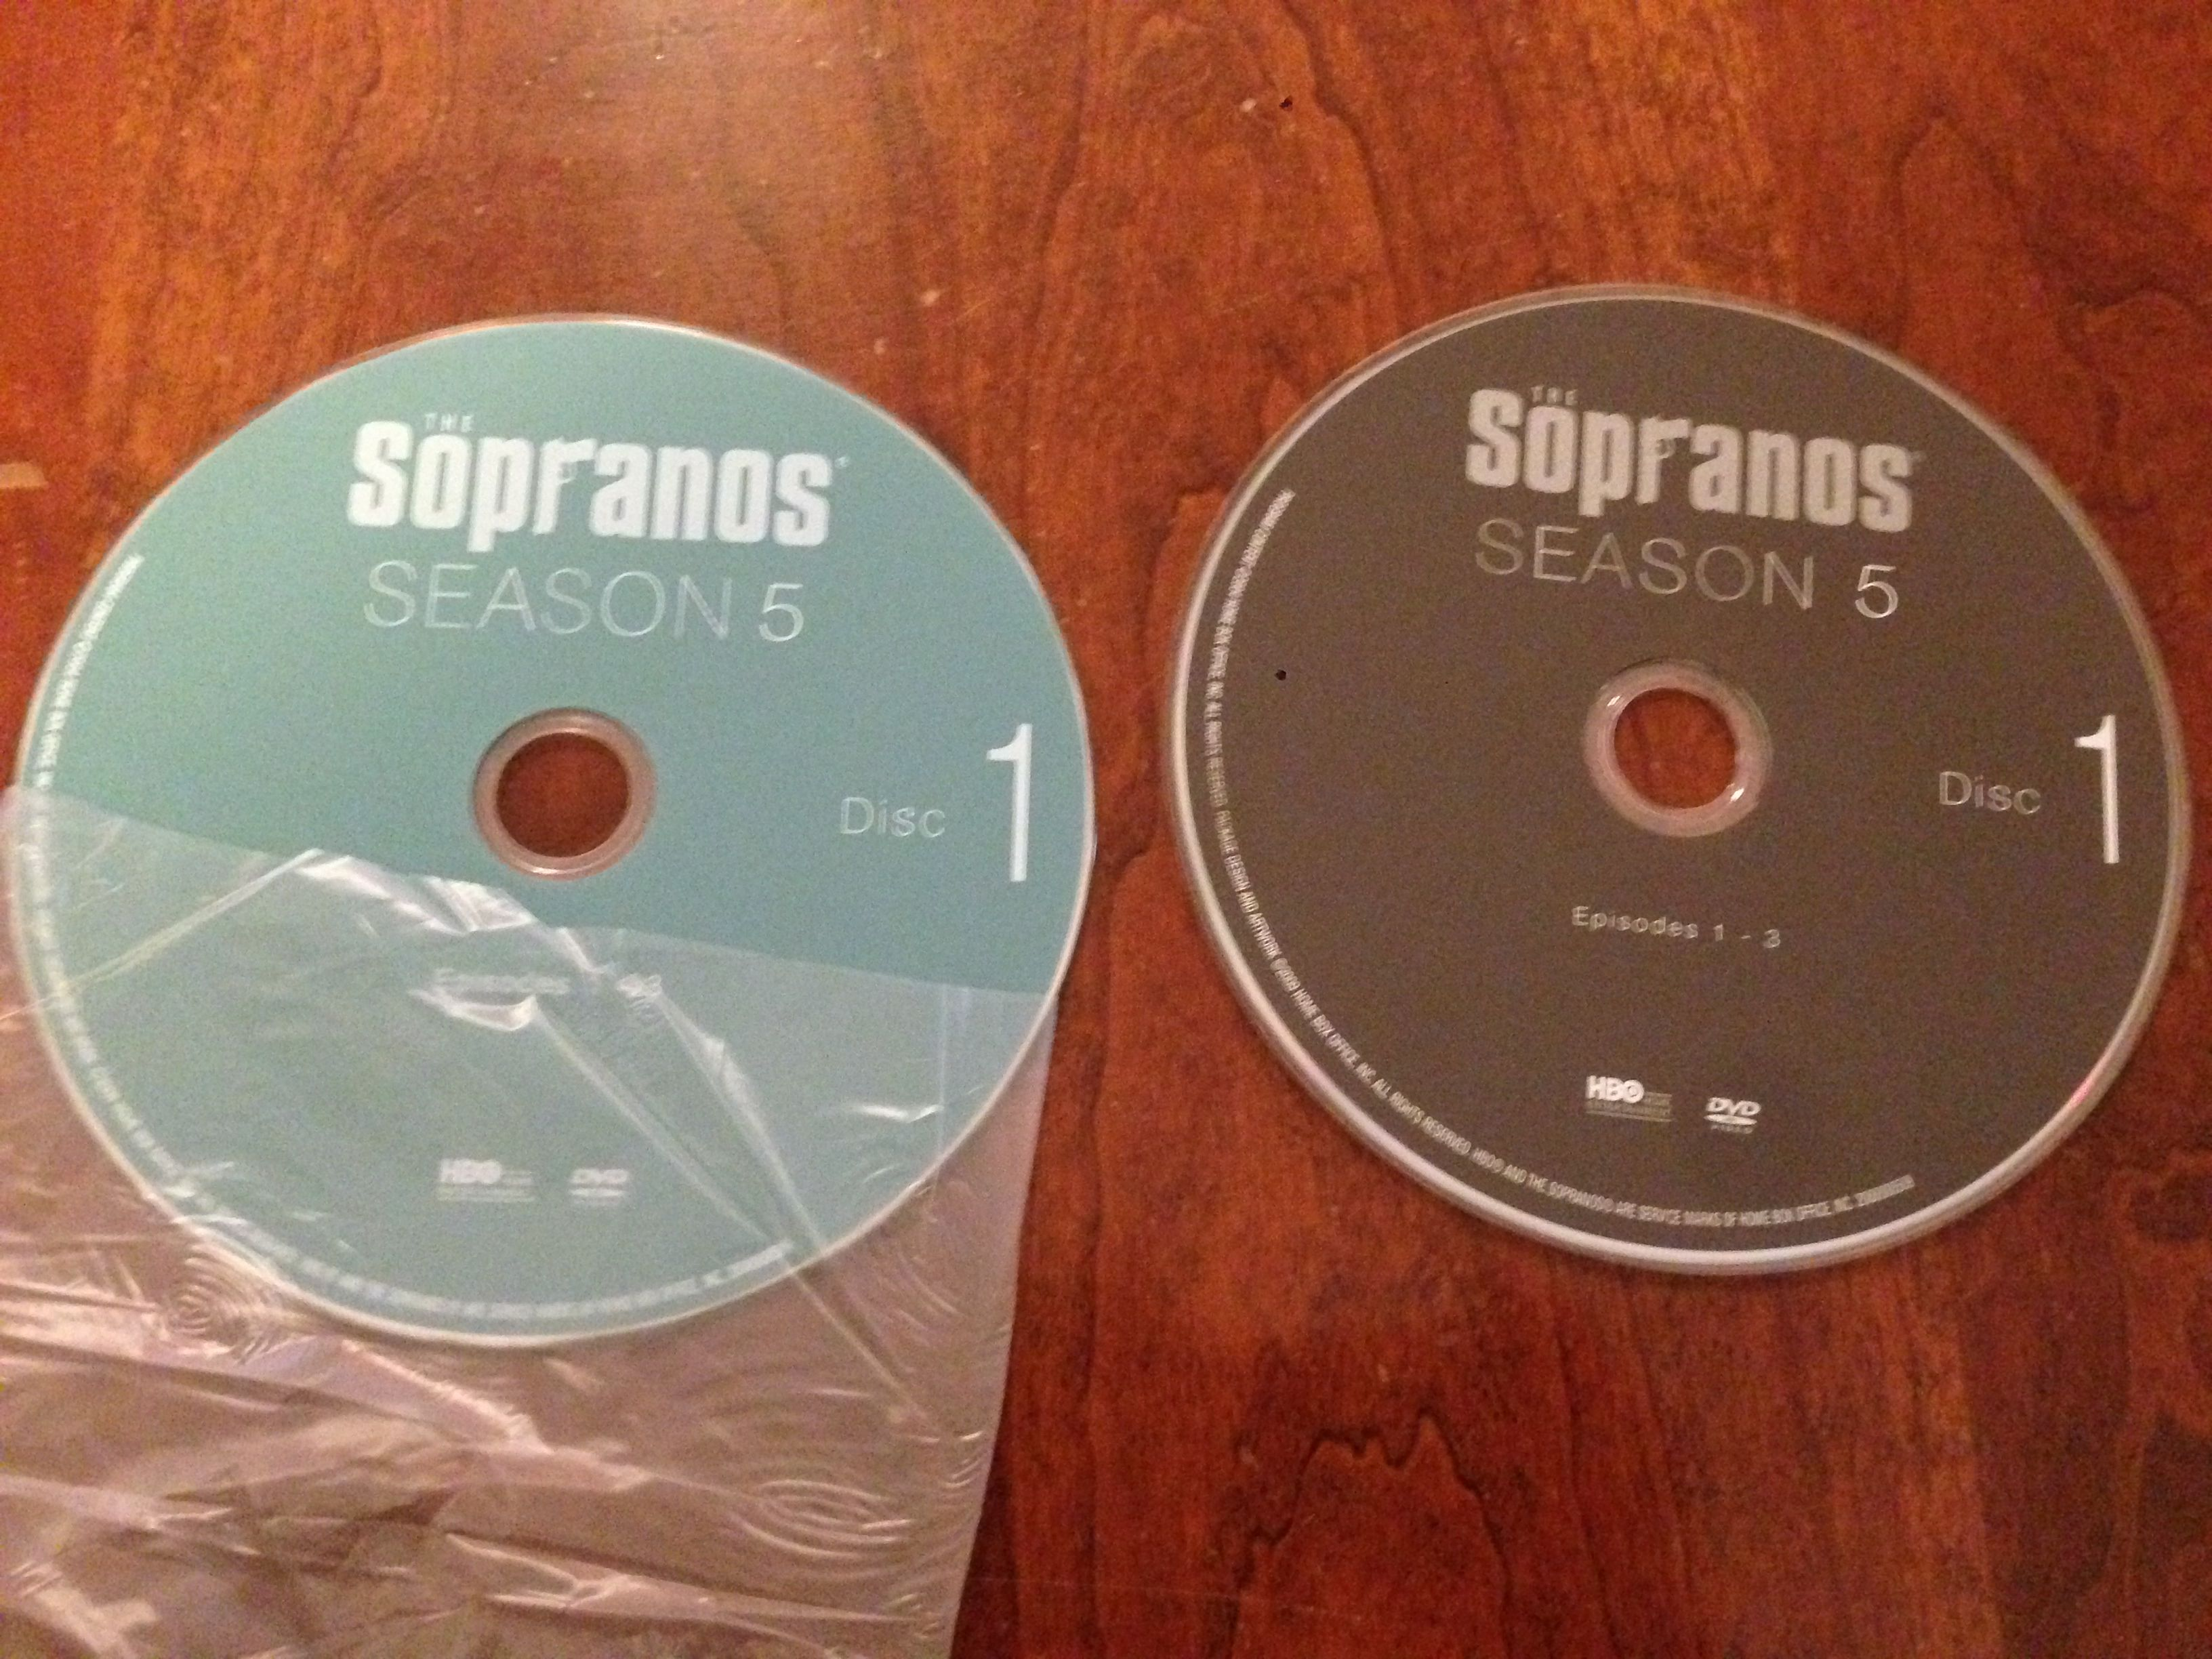 How can you tell bootleg DVD's? - The eBay Community